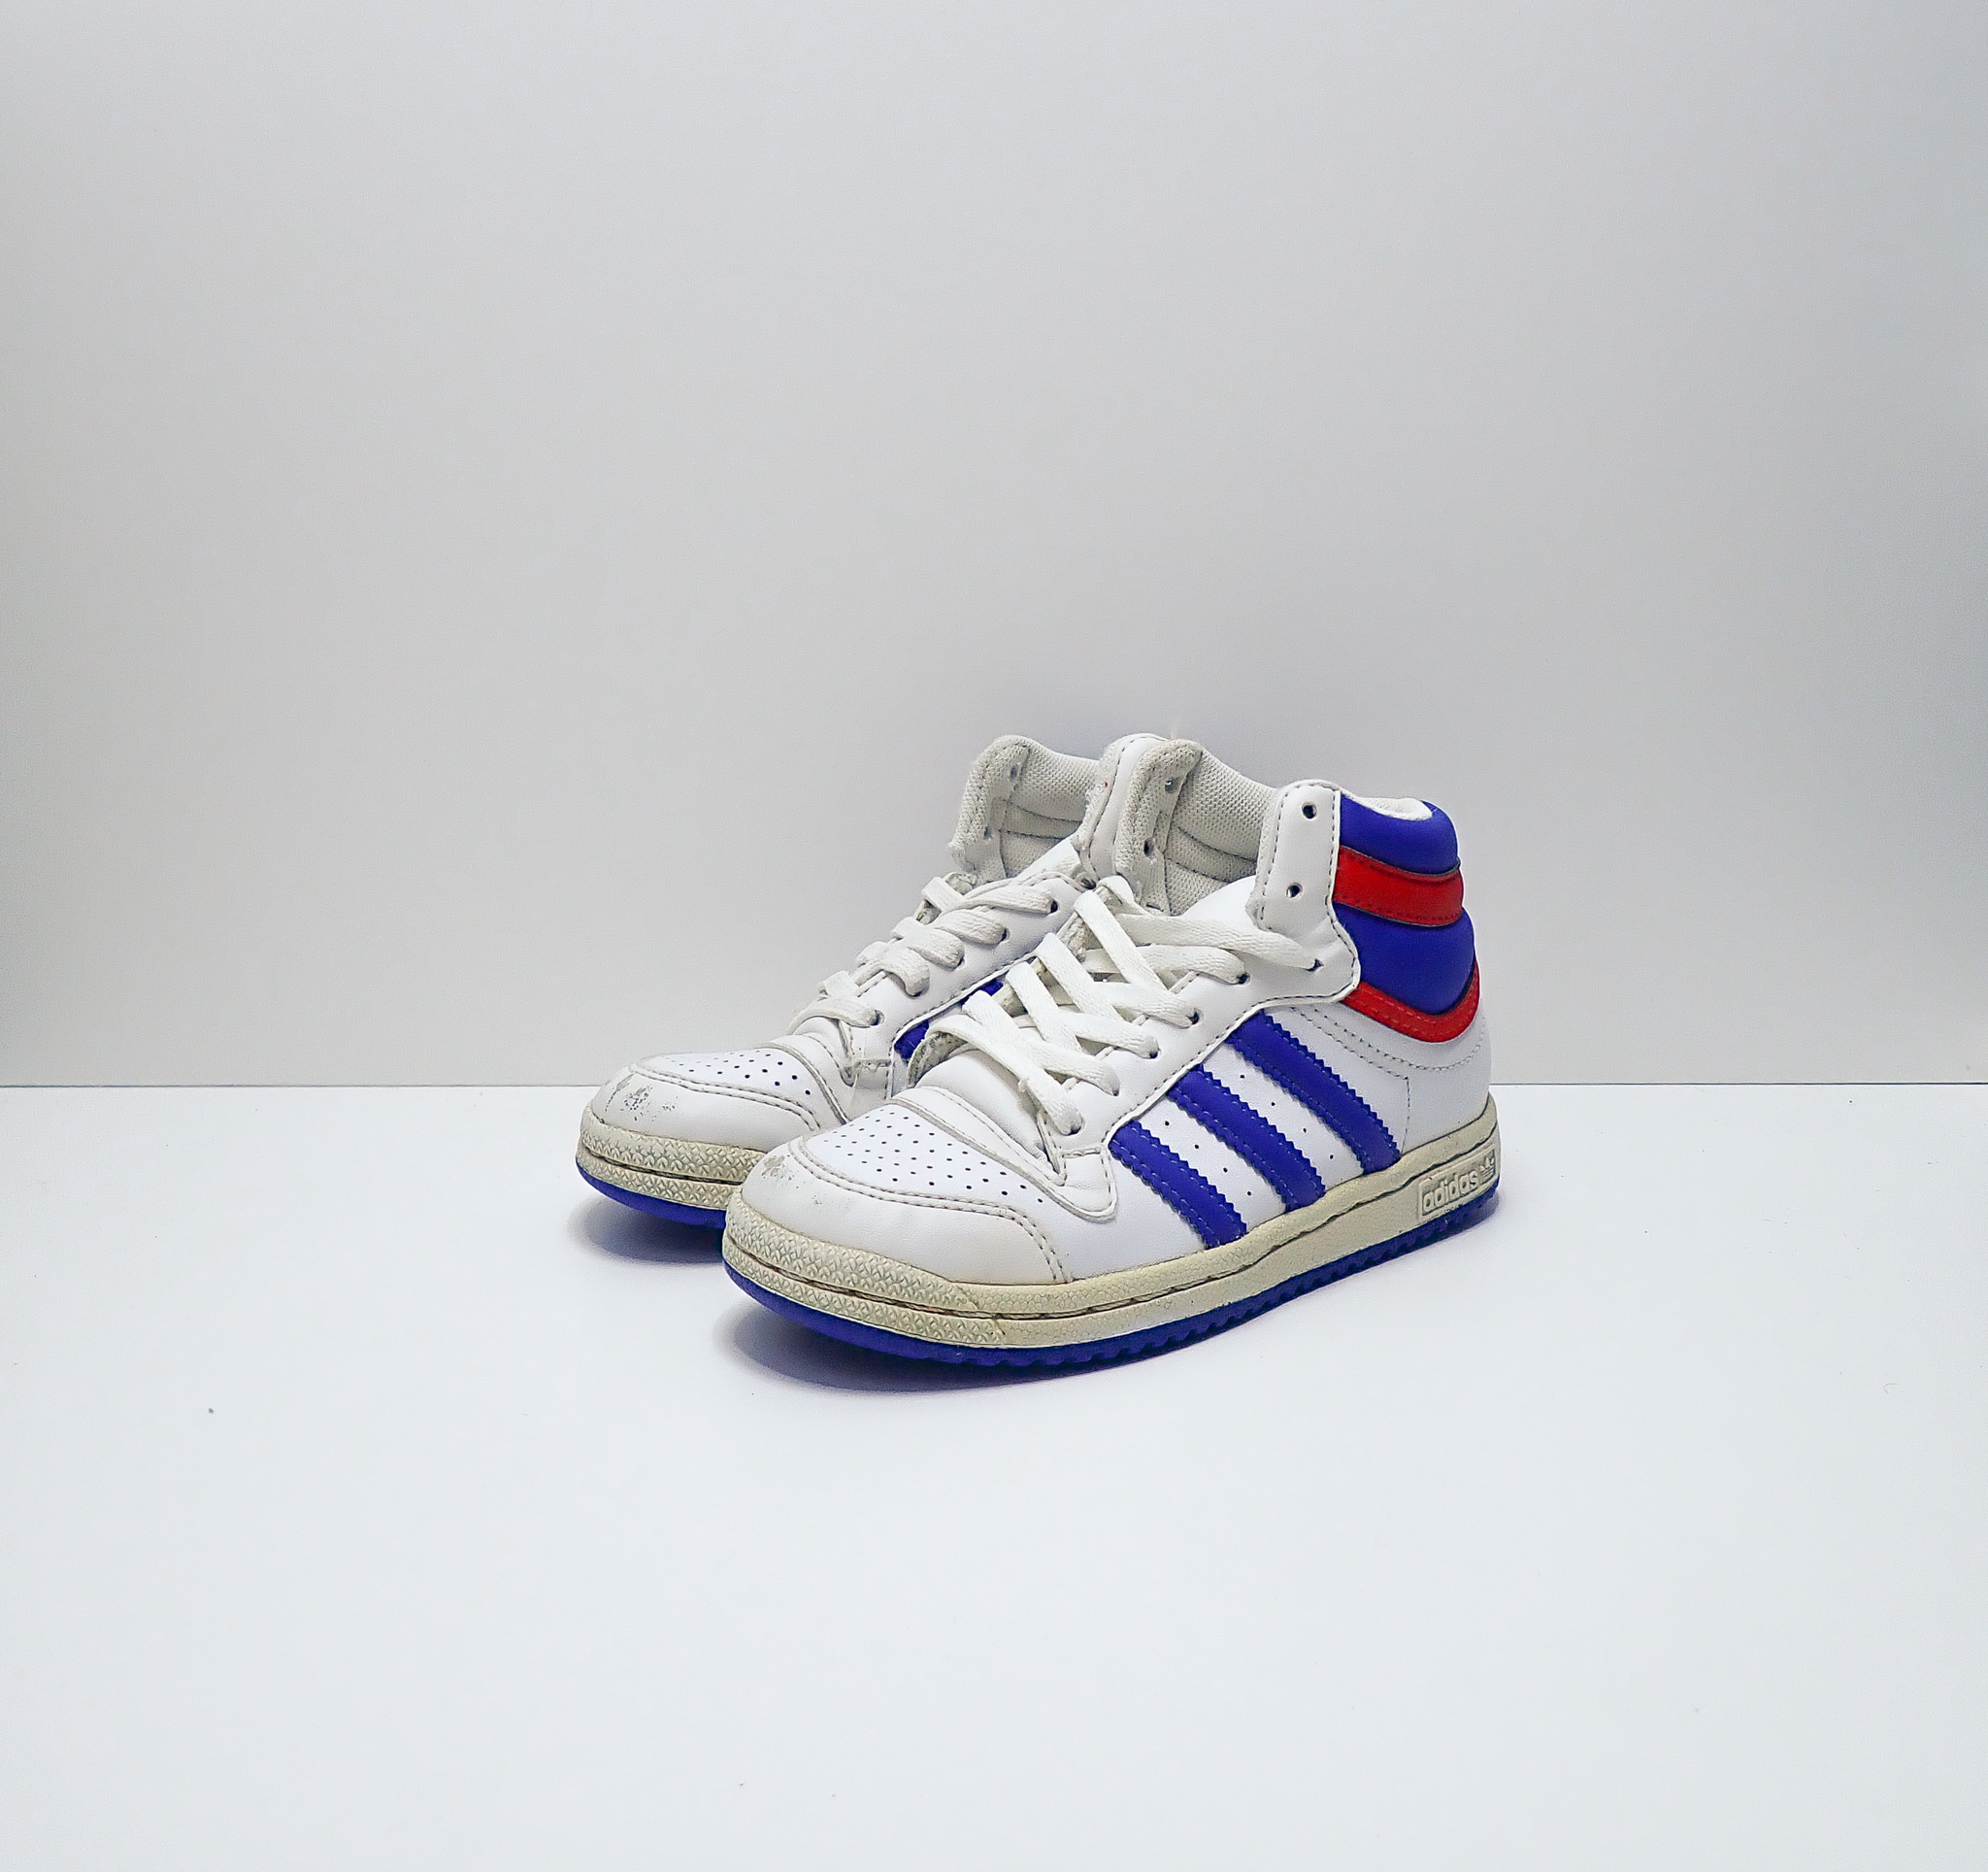 Adidas Top Ten Toddler